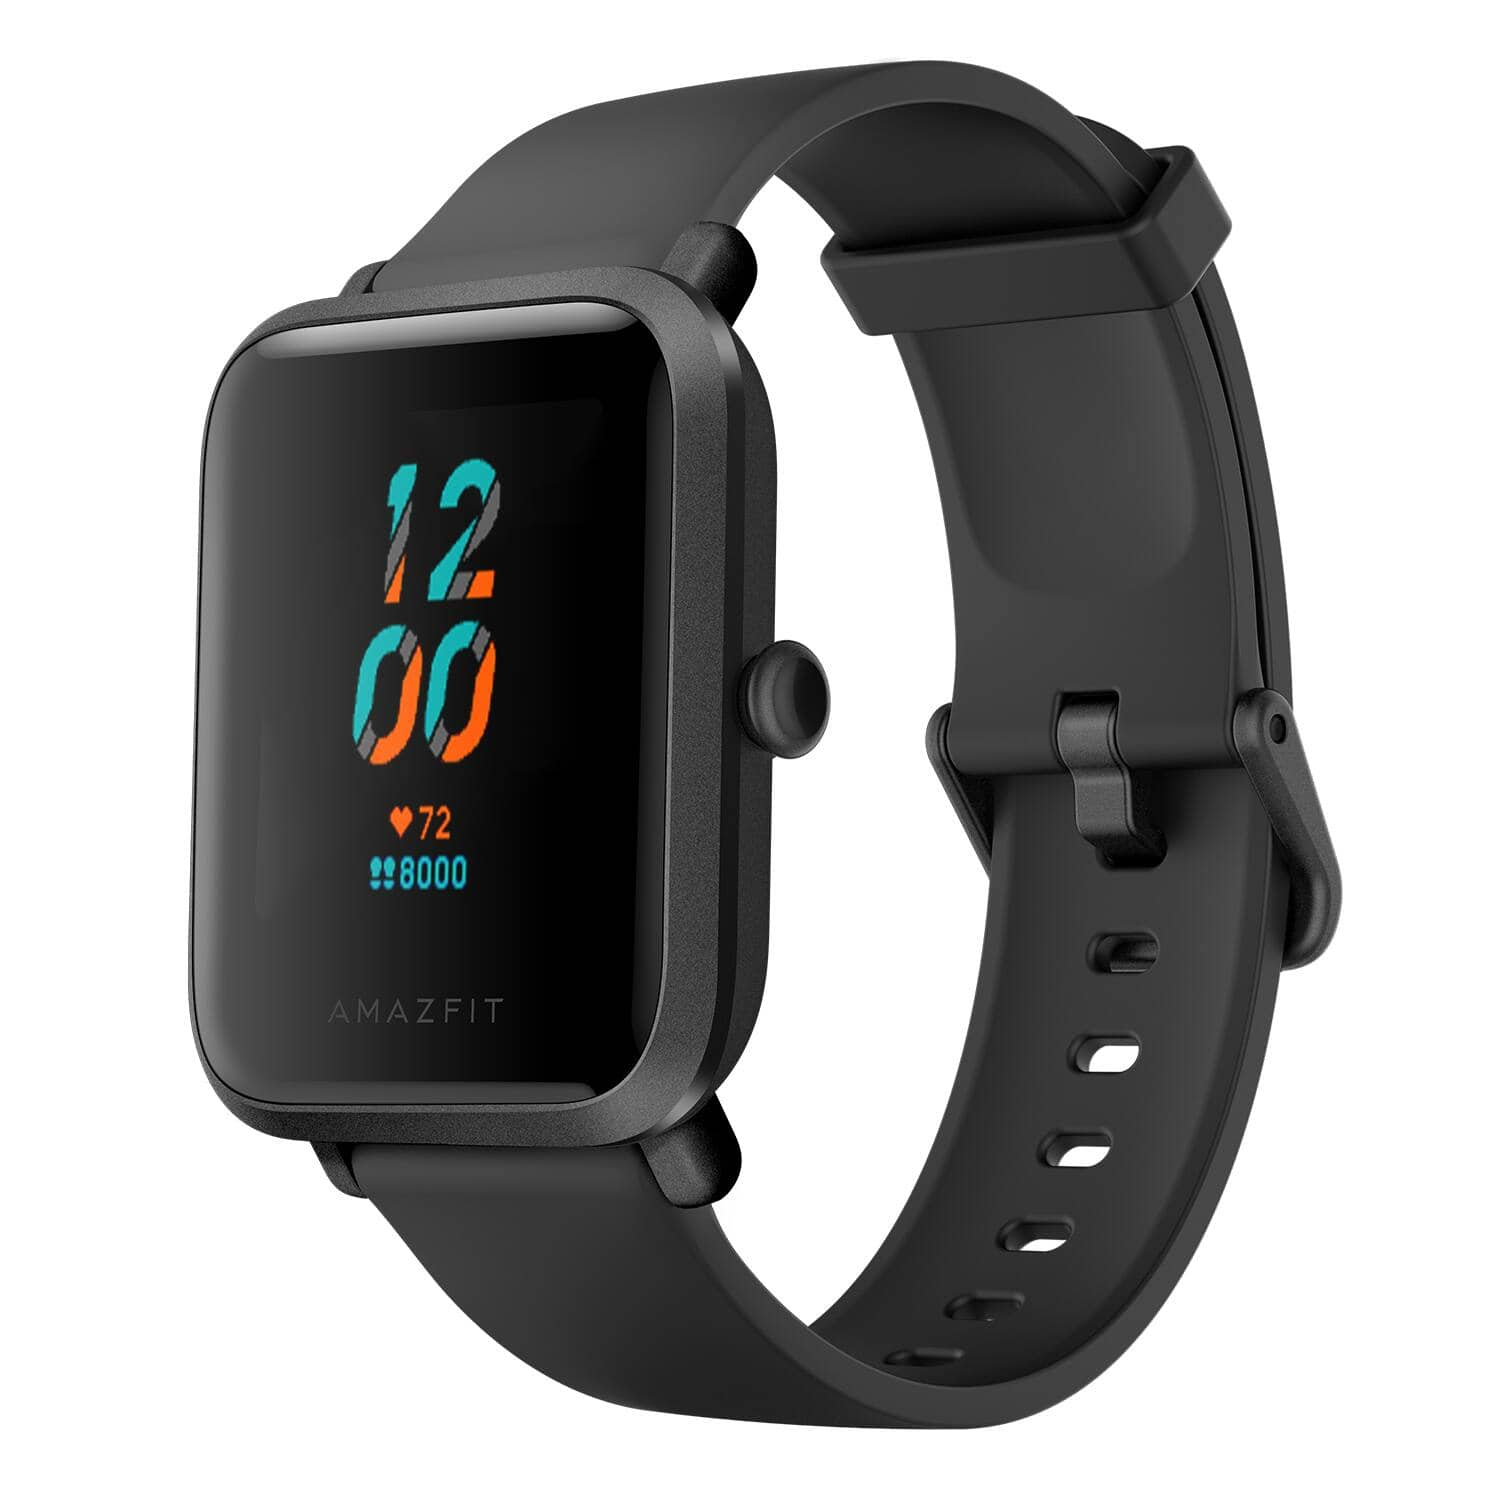 Amazfit Bip S Fitness GPS Smartwatch with 40-Day Battery Life (Various Colors) @ Amazon $55.99 + FS